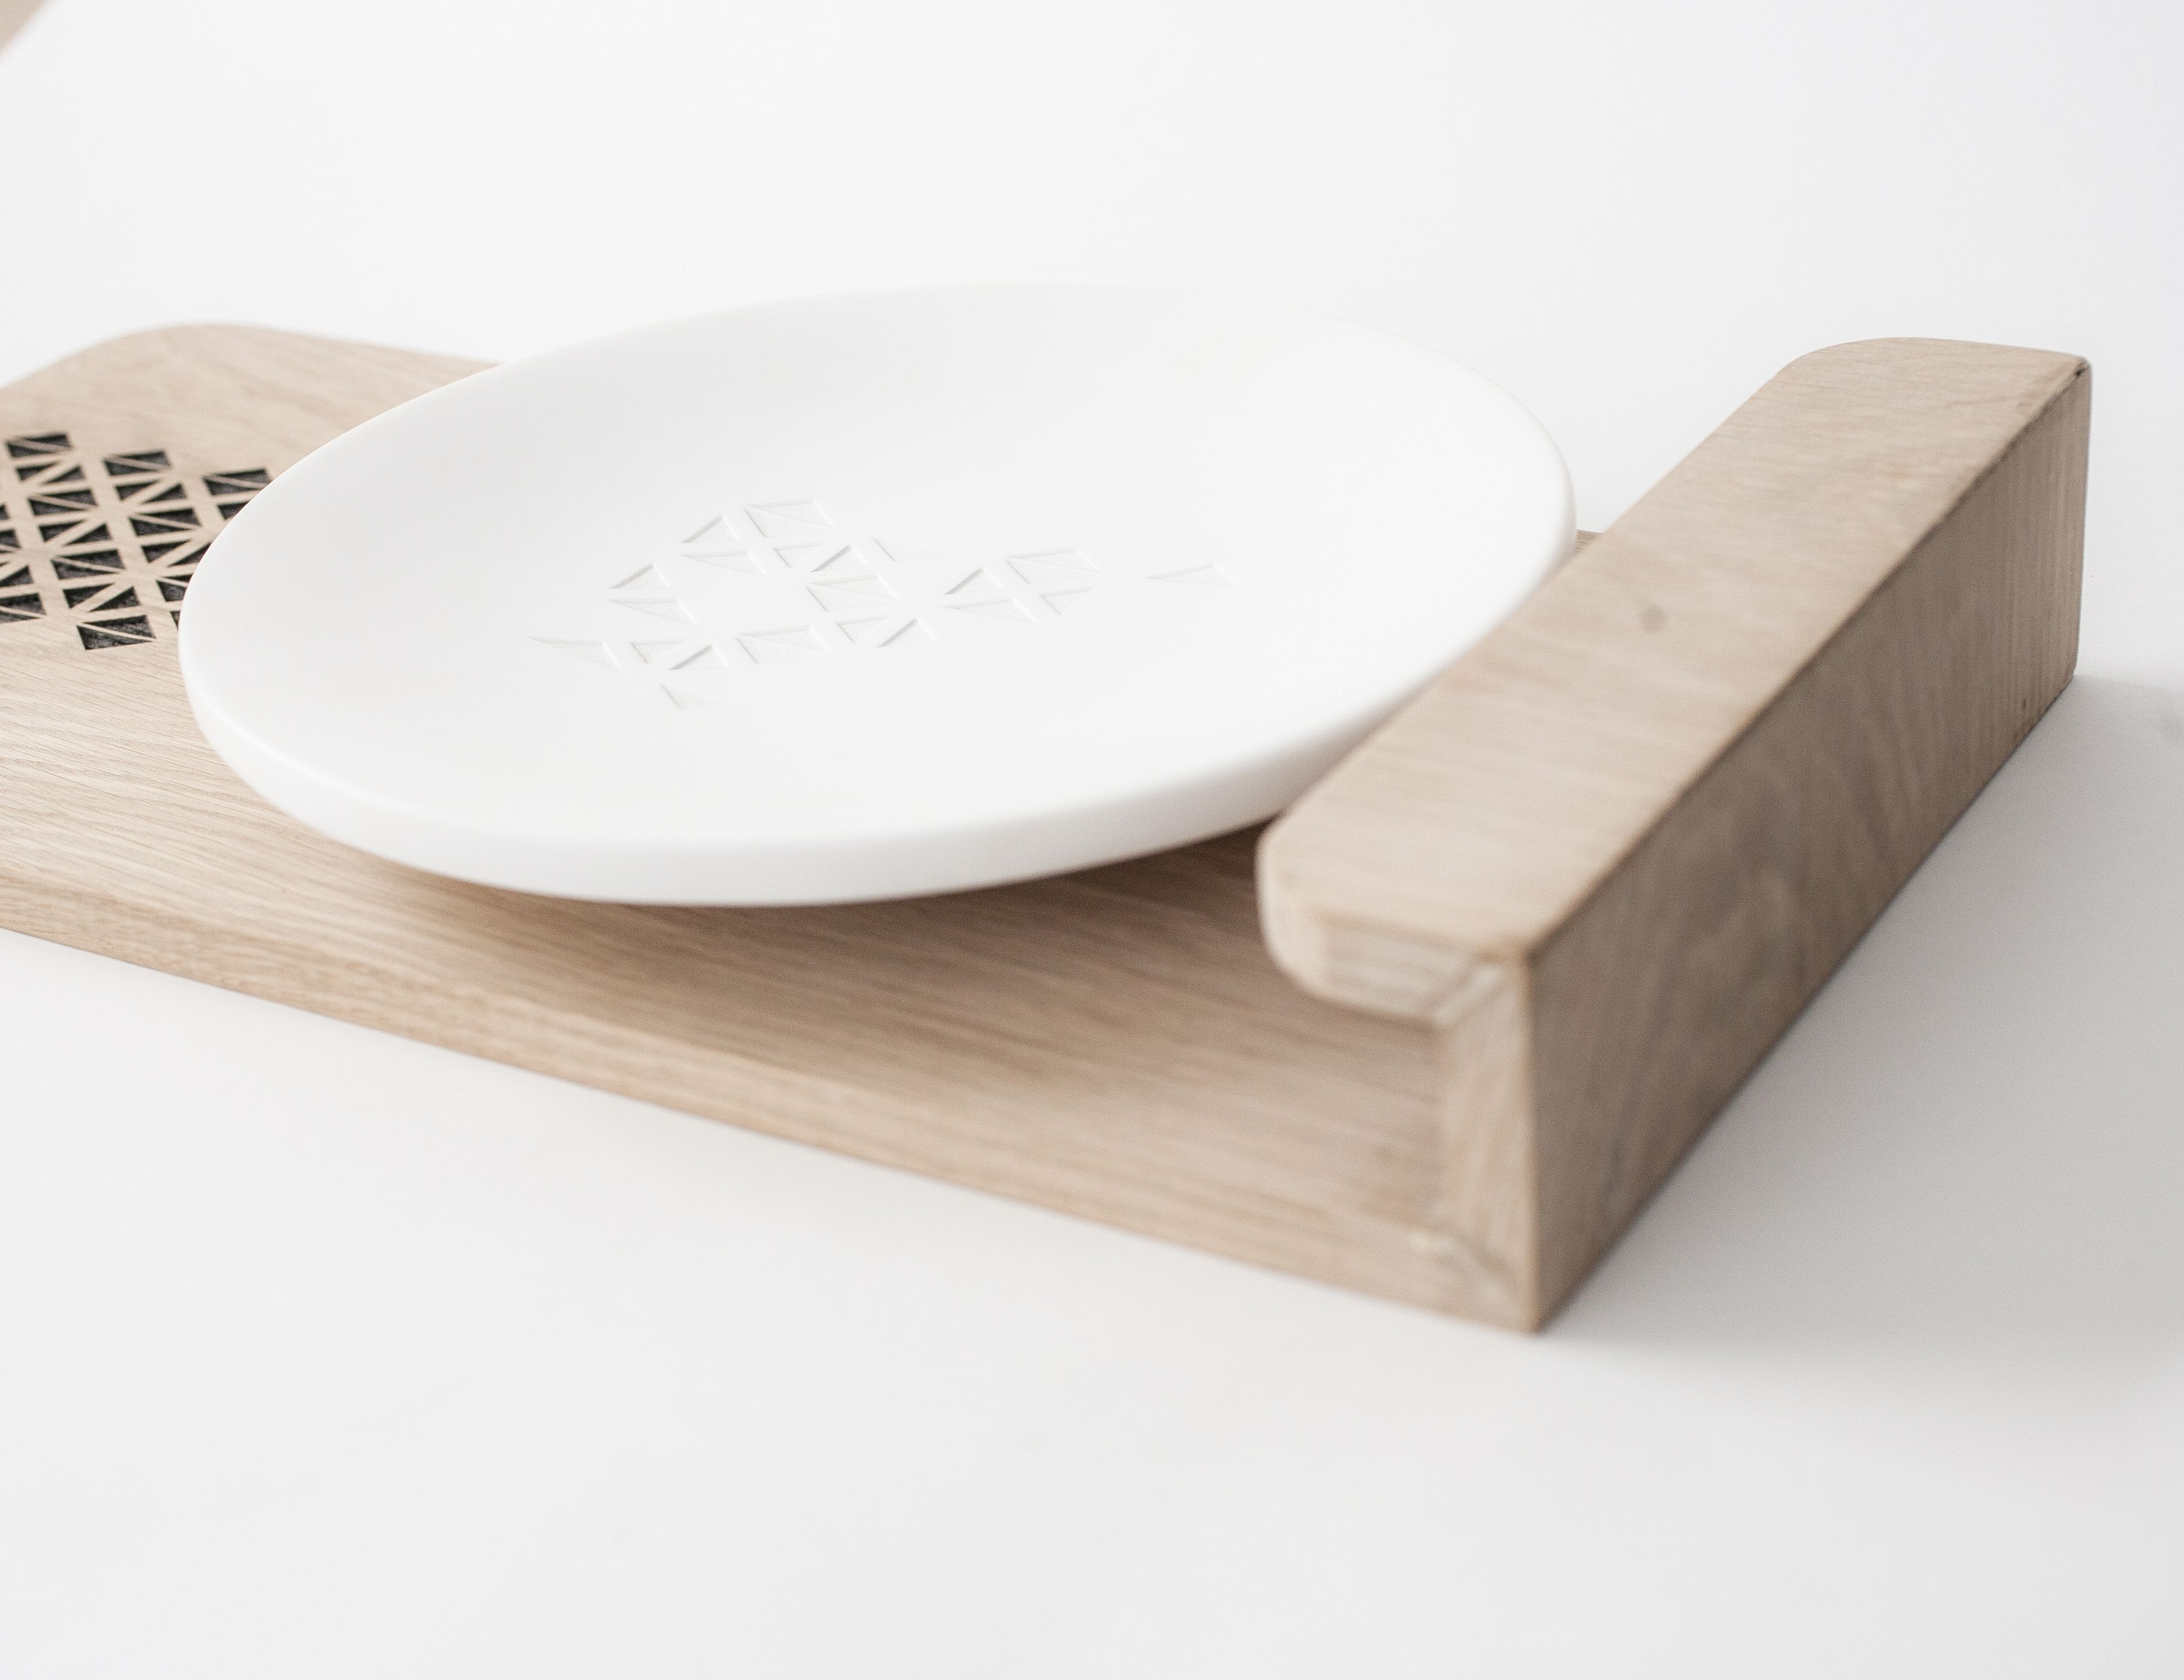 Superior Solid Oak Base In Laser Cut With Shapes From Cyprus Traditional Art  (embroidery) /